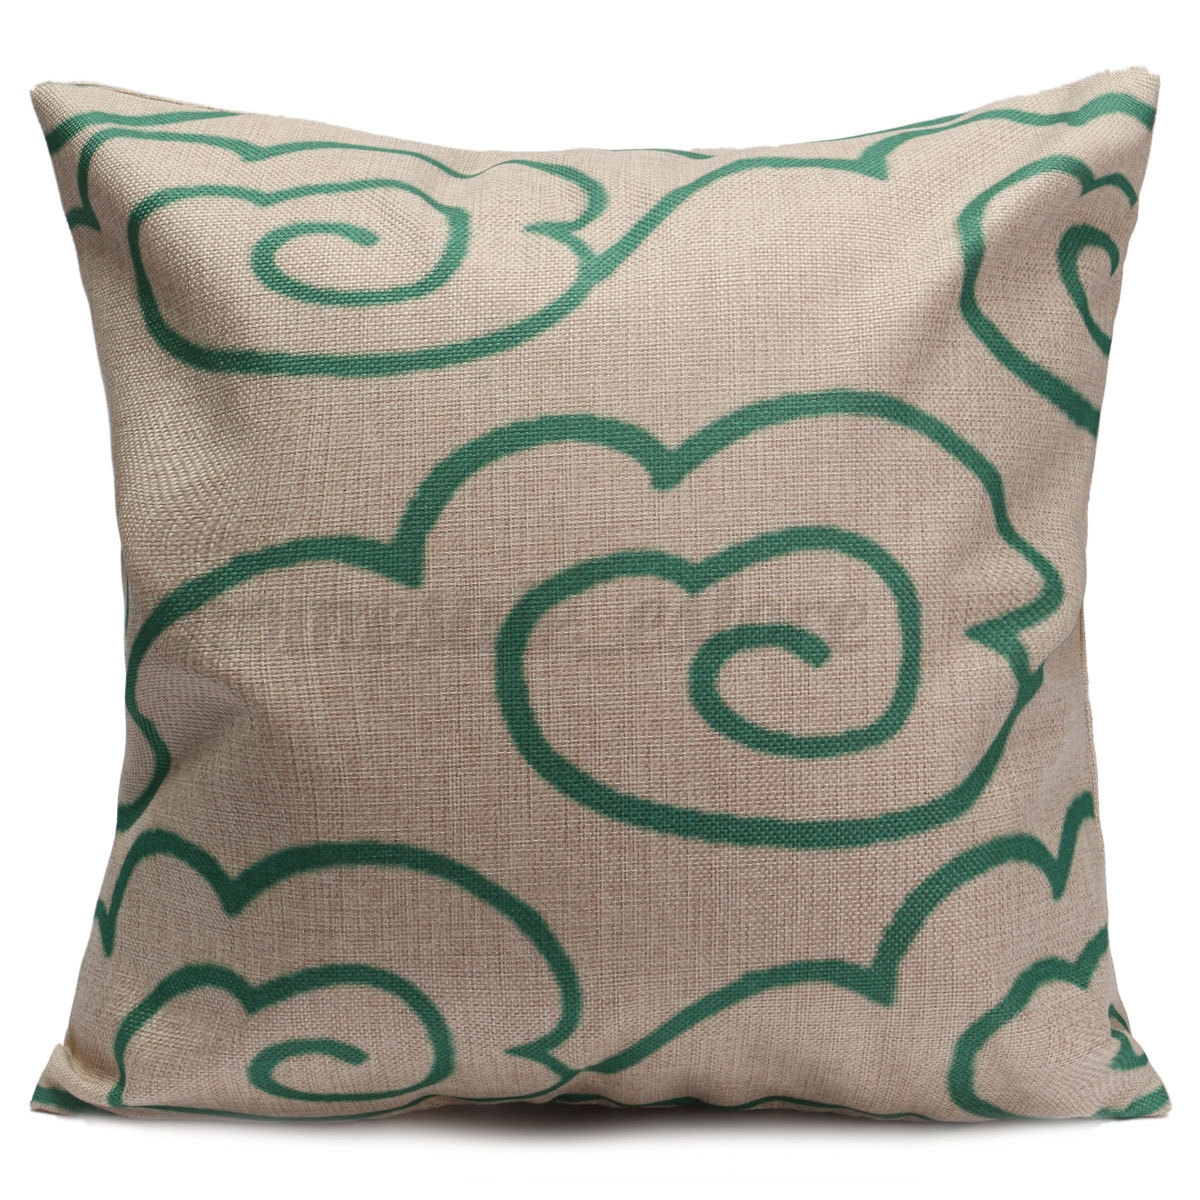 Decorative Pillows Vintage : Casual Style Vintage Cushion Cover Throw Pillow Covers for Home Sofa Decoration eBay